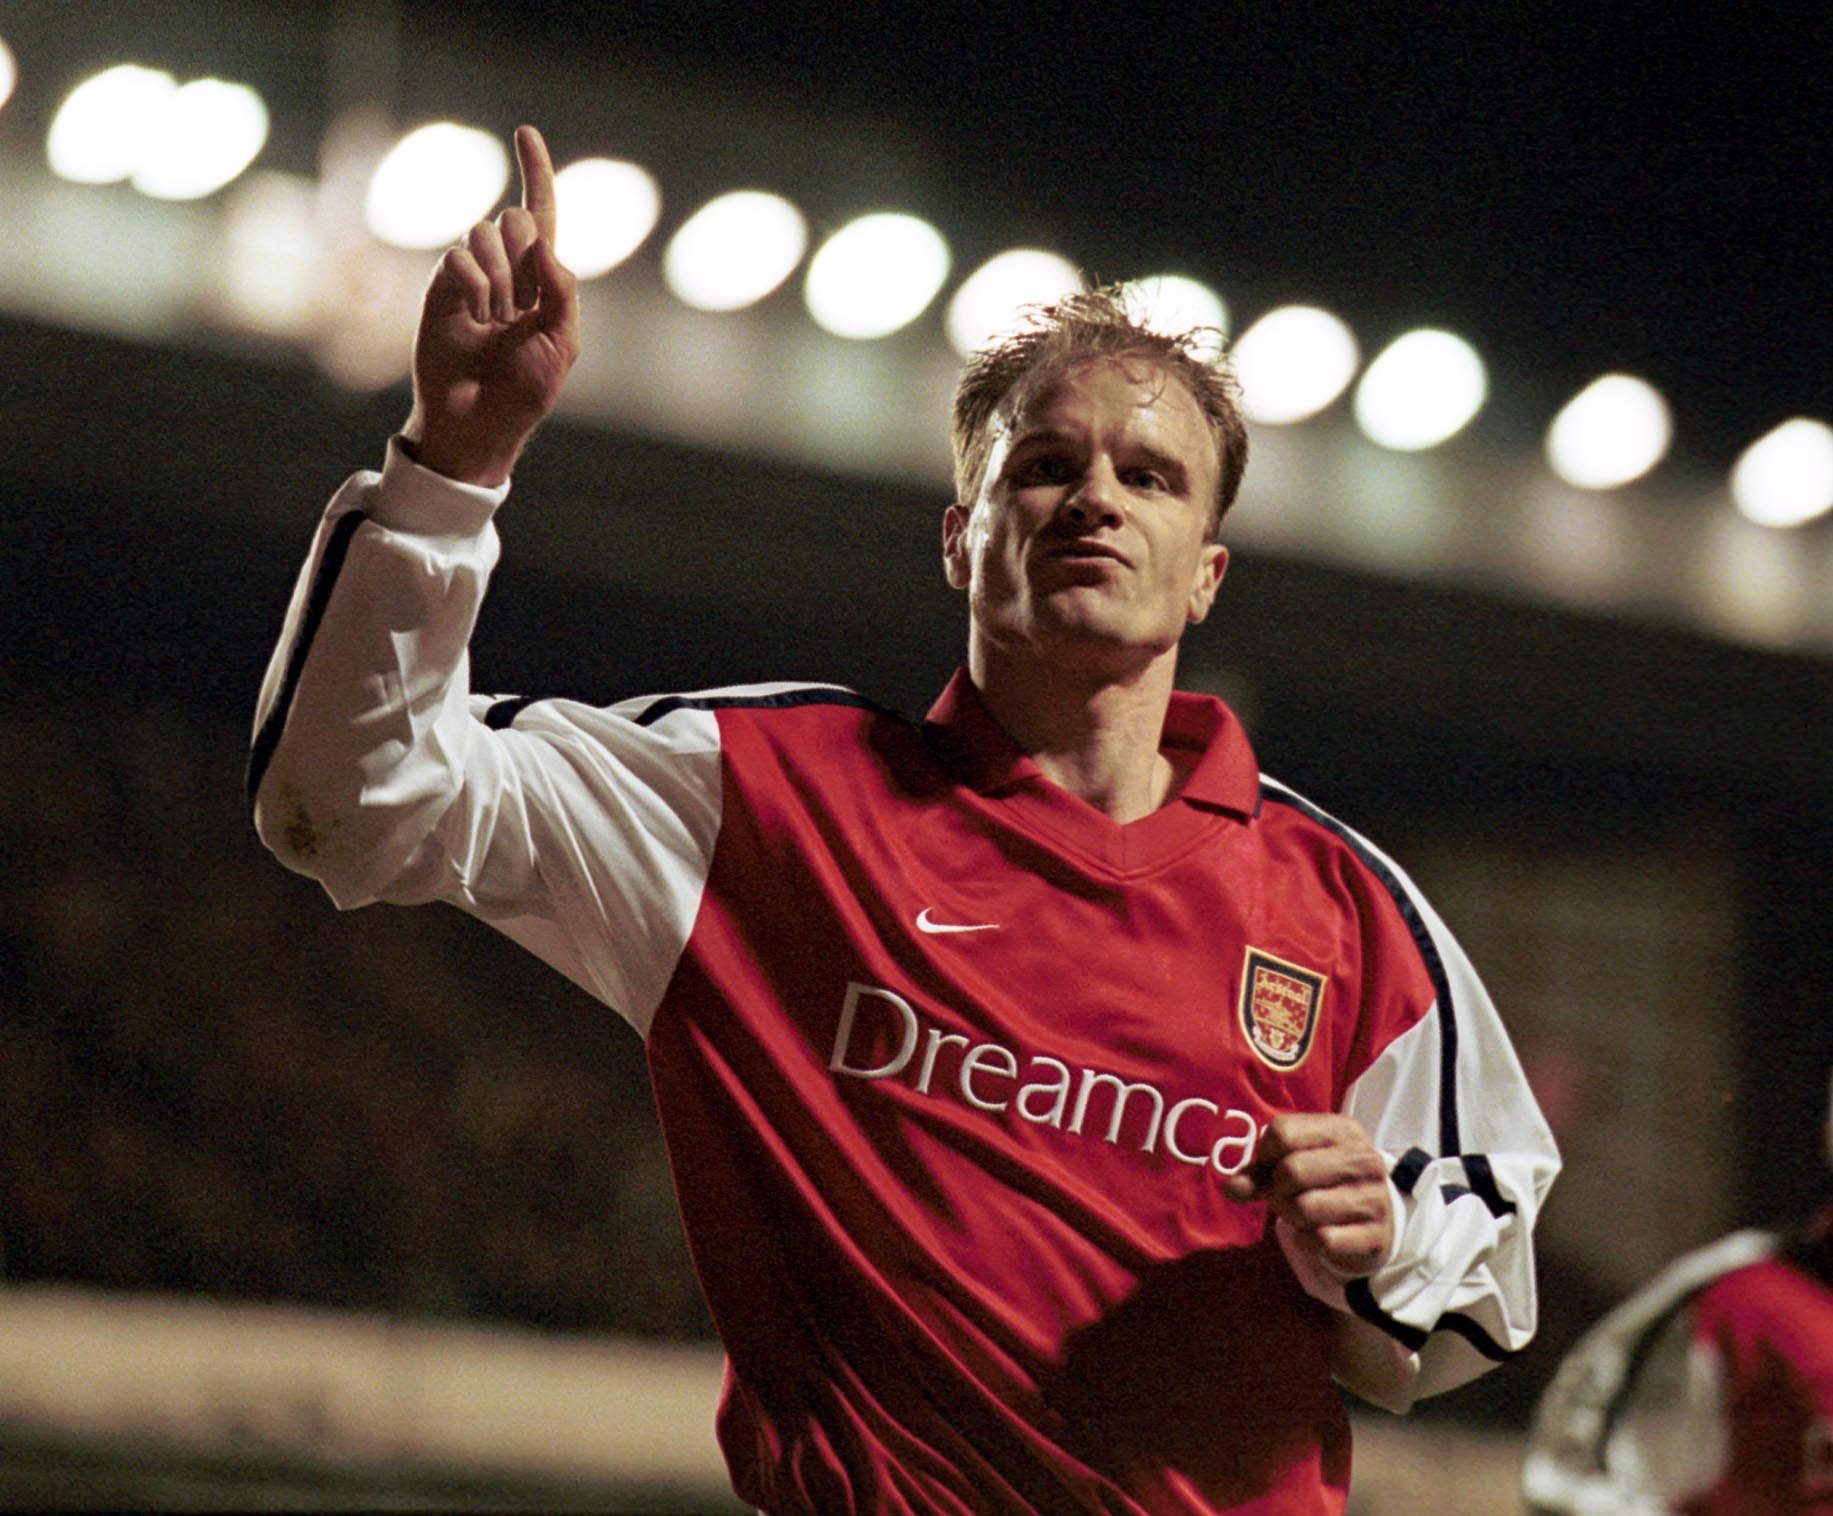 Arsenal have already found the new Bergkamp, claims Pires